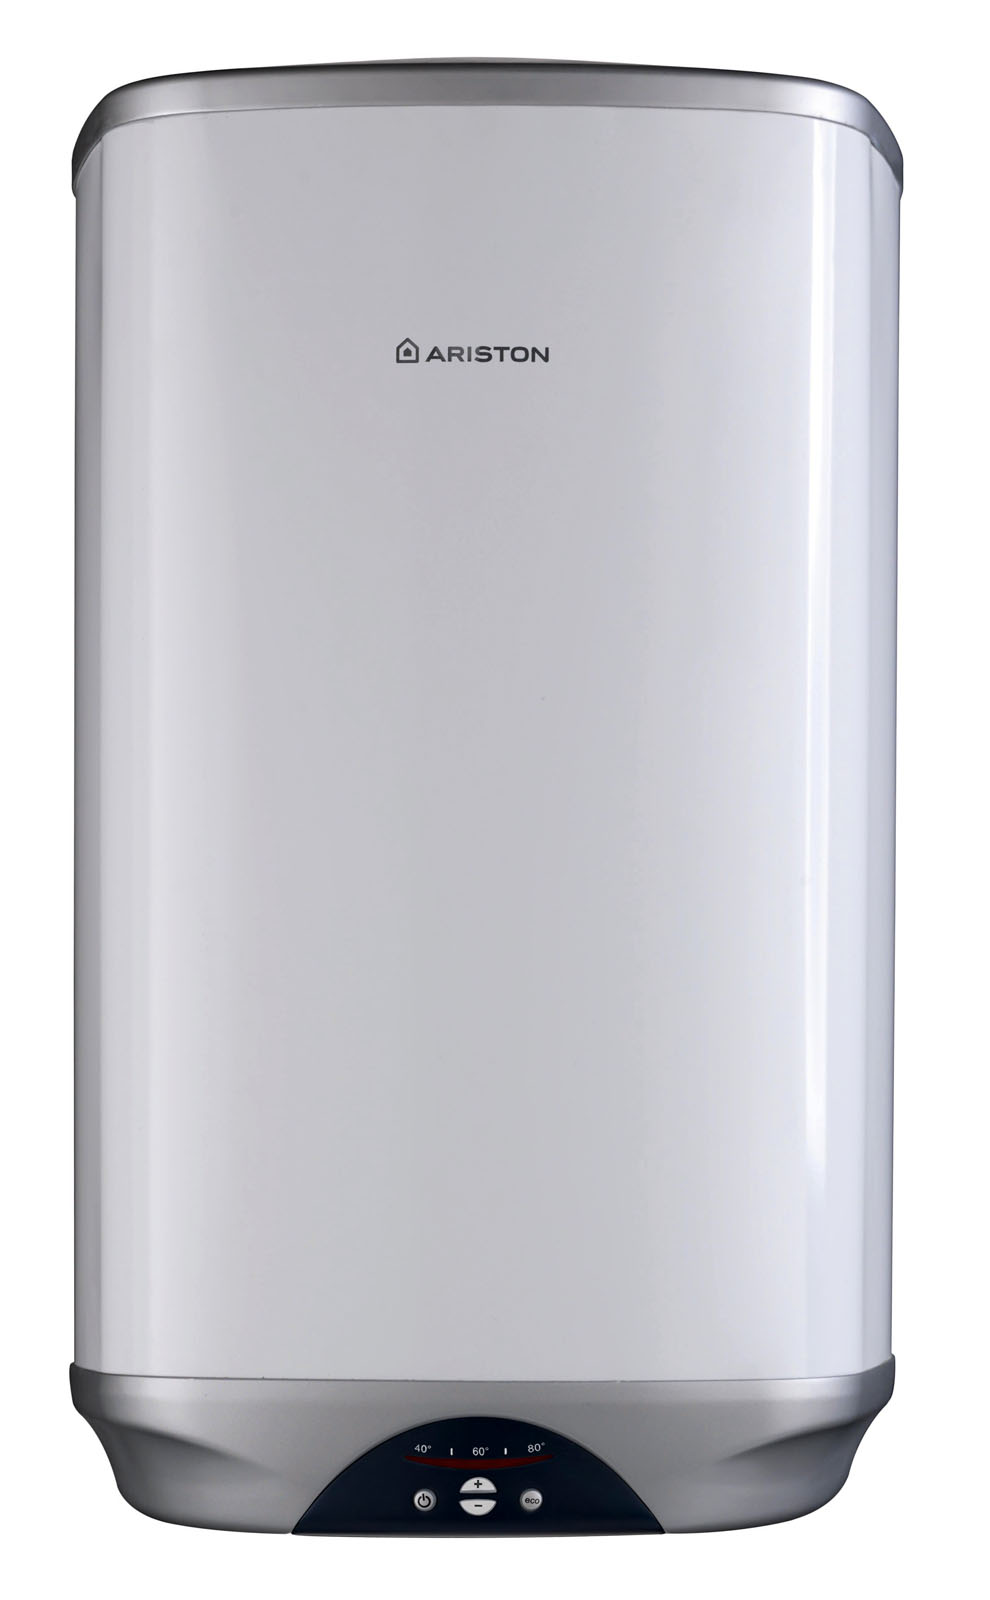 ariston 50 liter shape eco warmwasser speicher elektro. Black Bedroom Furniture Sets. Home Design Ideas